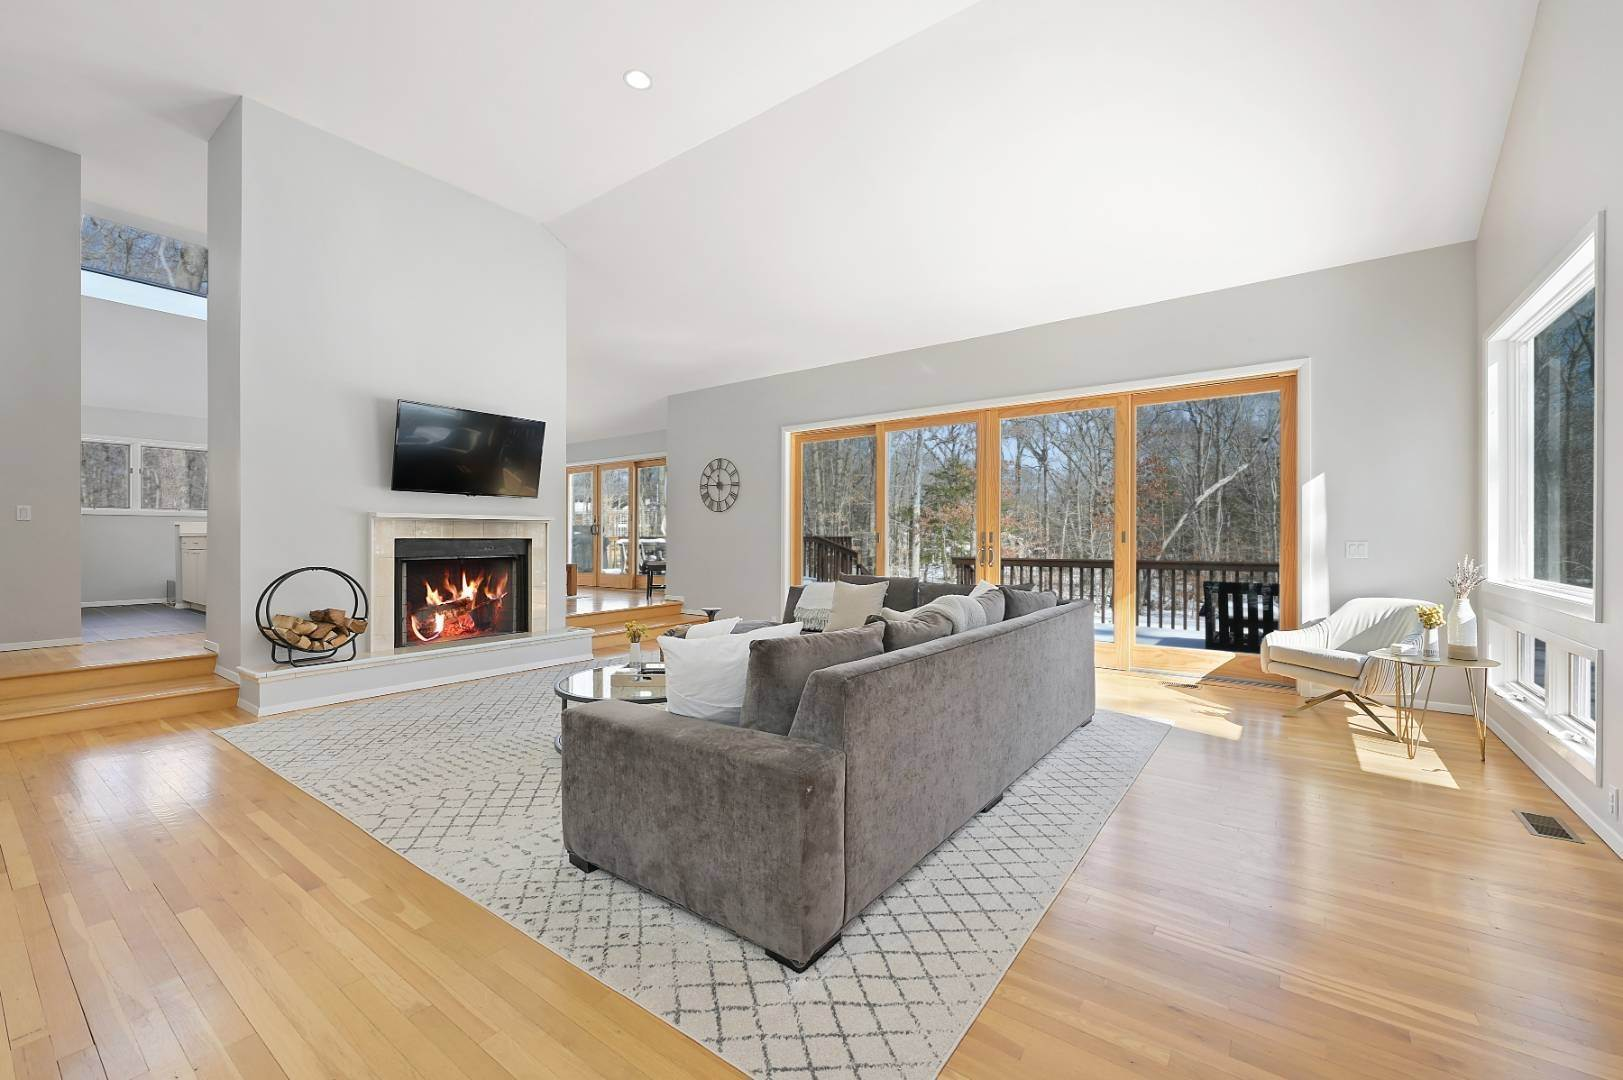 Single Family Home for Sale at Contemporary Retreat In Amagansett North 61 Alberts Landing Road, Amagansett, NY 11930